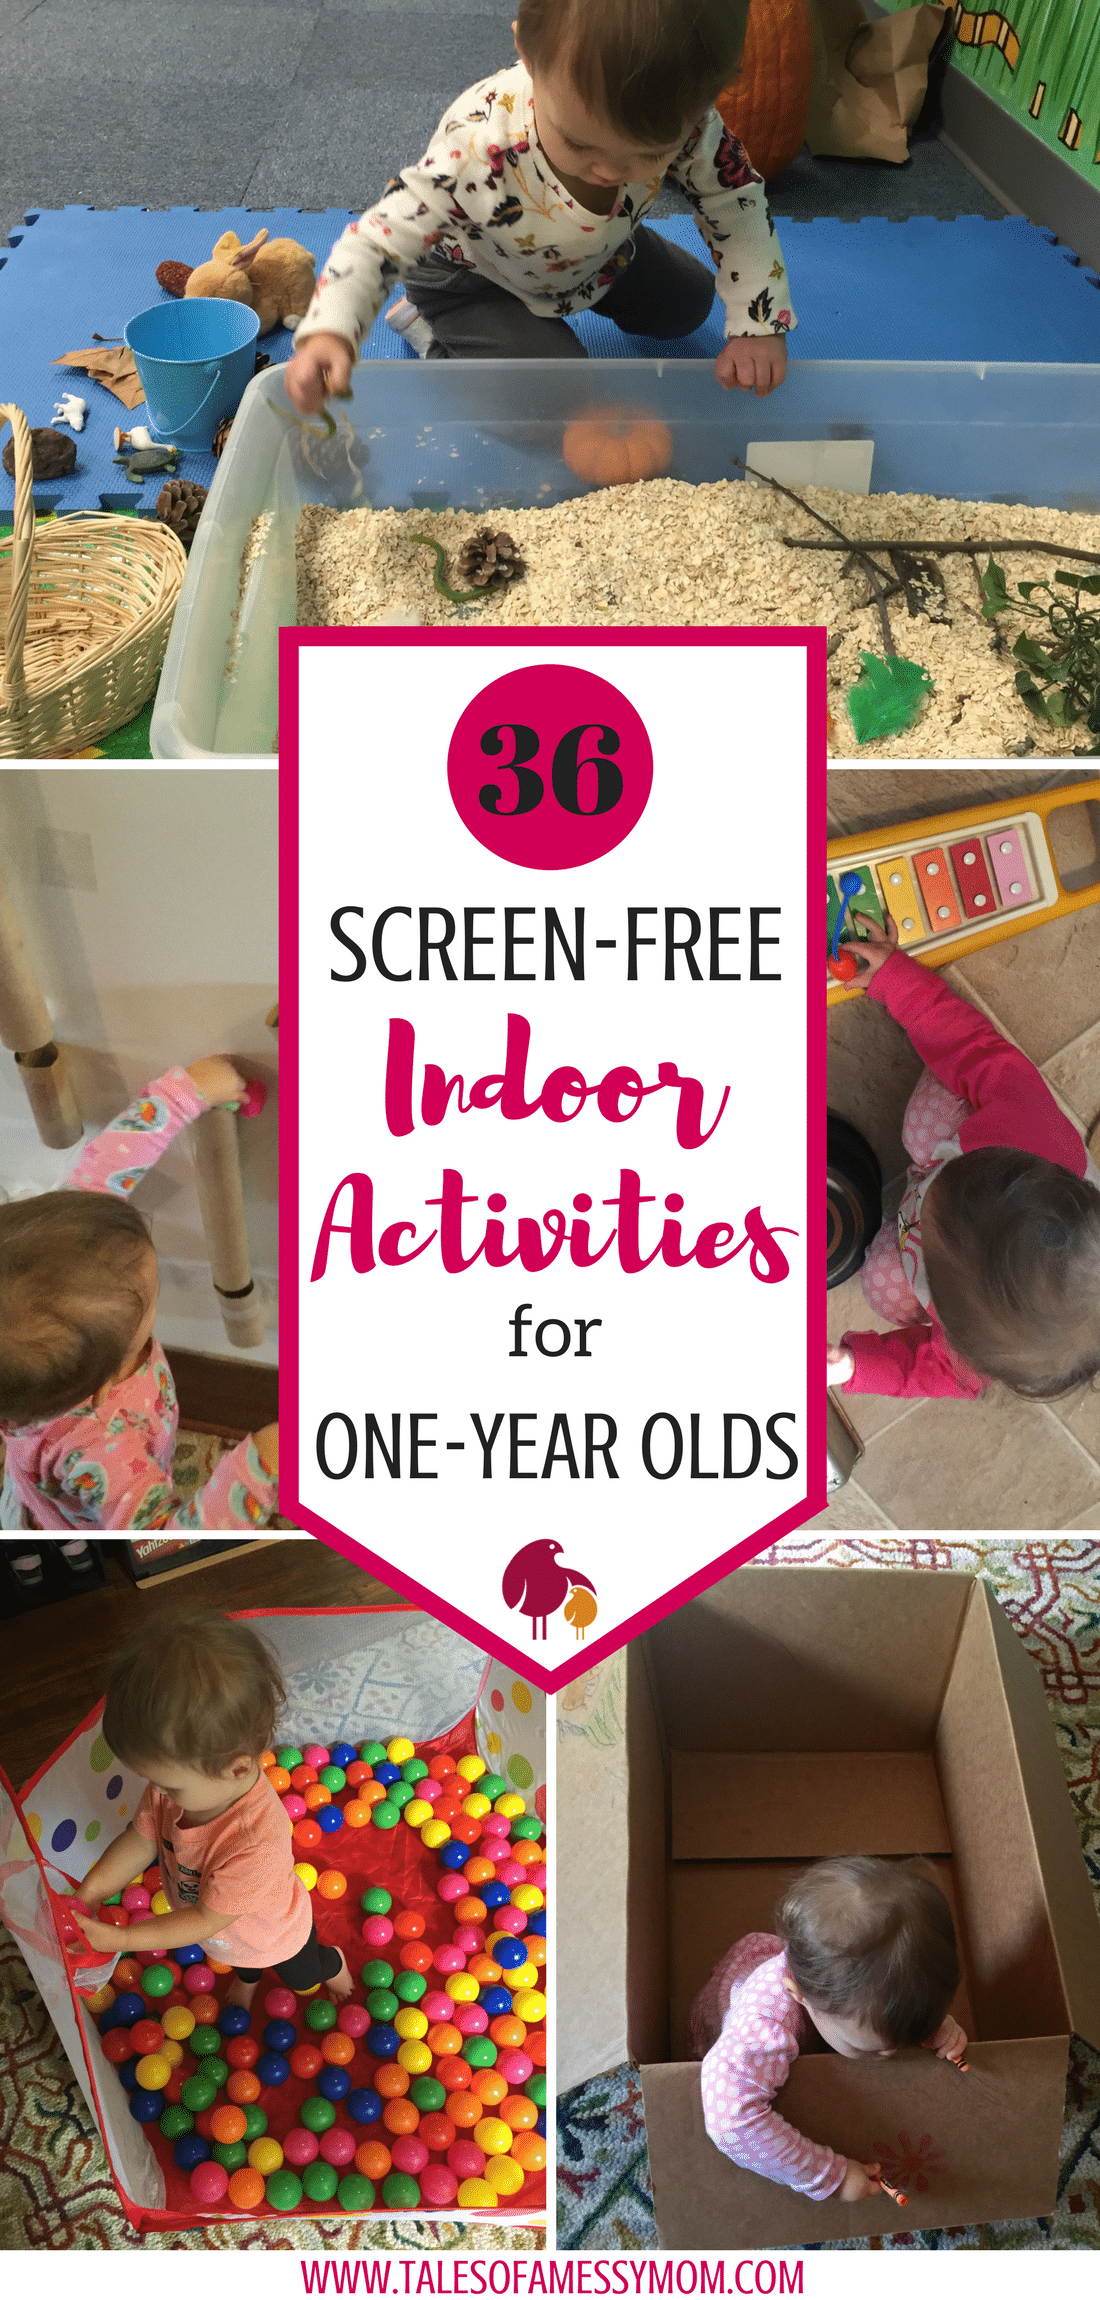 36 screen-free indoor activities to keep your one year old occupied during those rainy and snowy days. Encourage play, support development, and increase language and motor skills with these activities. Plus, indoor activities that will get you out of the house if you're starting to get cabin fever. http://talesofamessymom.com